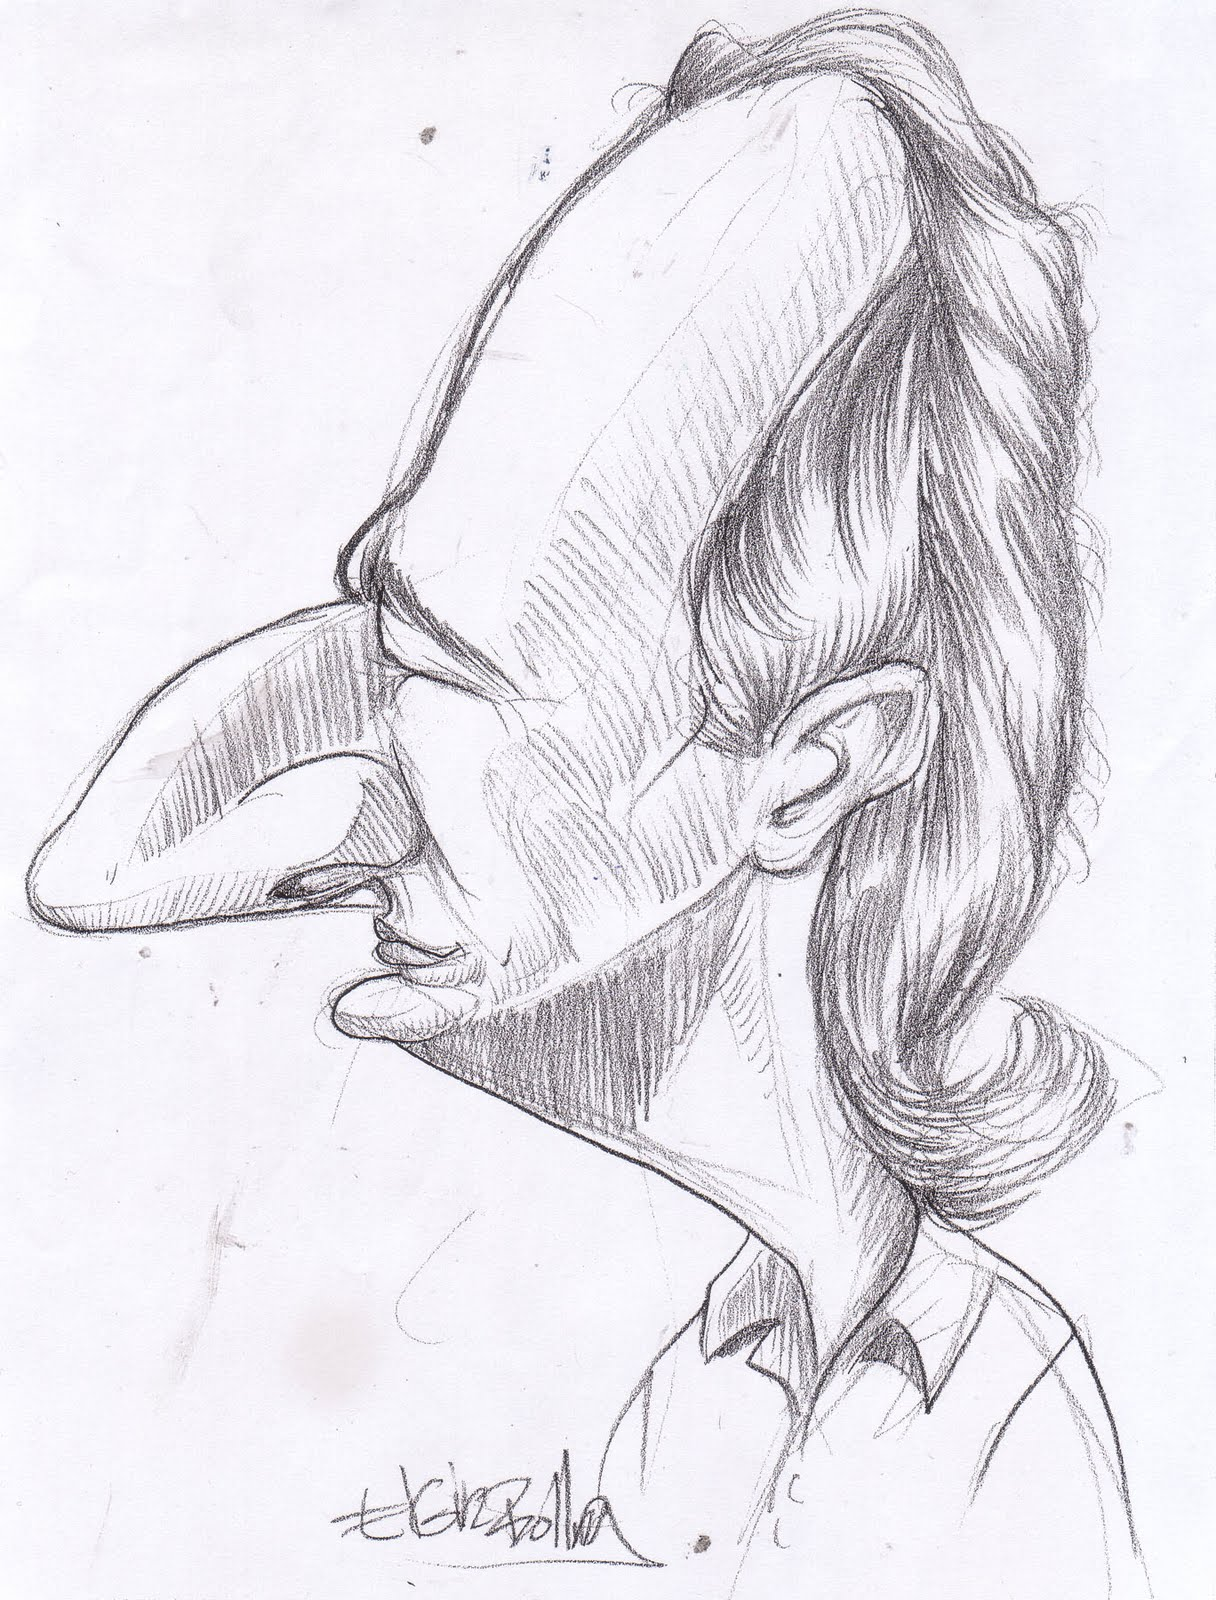 1216x1600 Subwaysurfer Blogggg Subway Pencil Caricature Portraits By Elgin